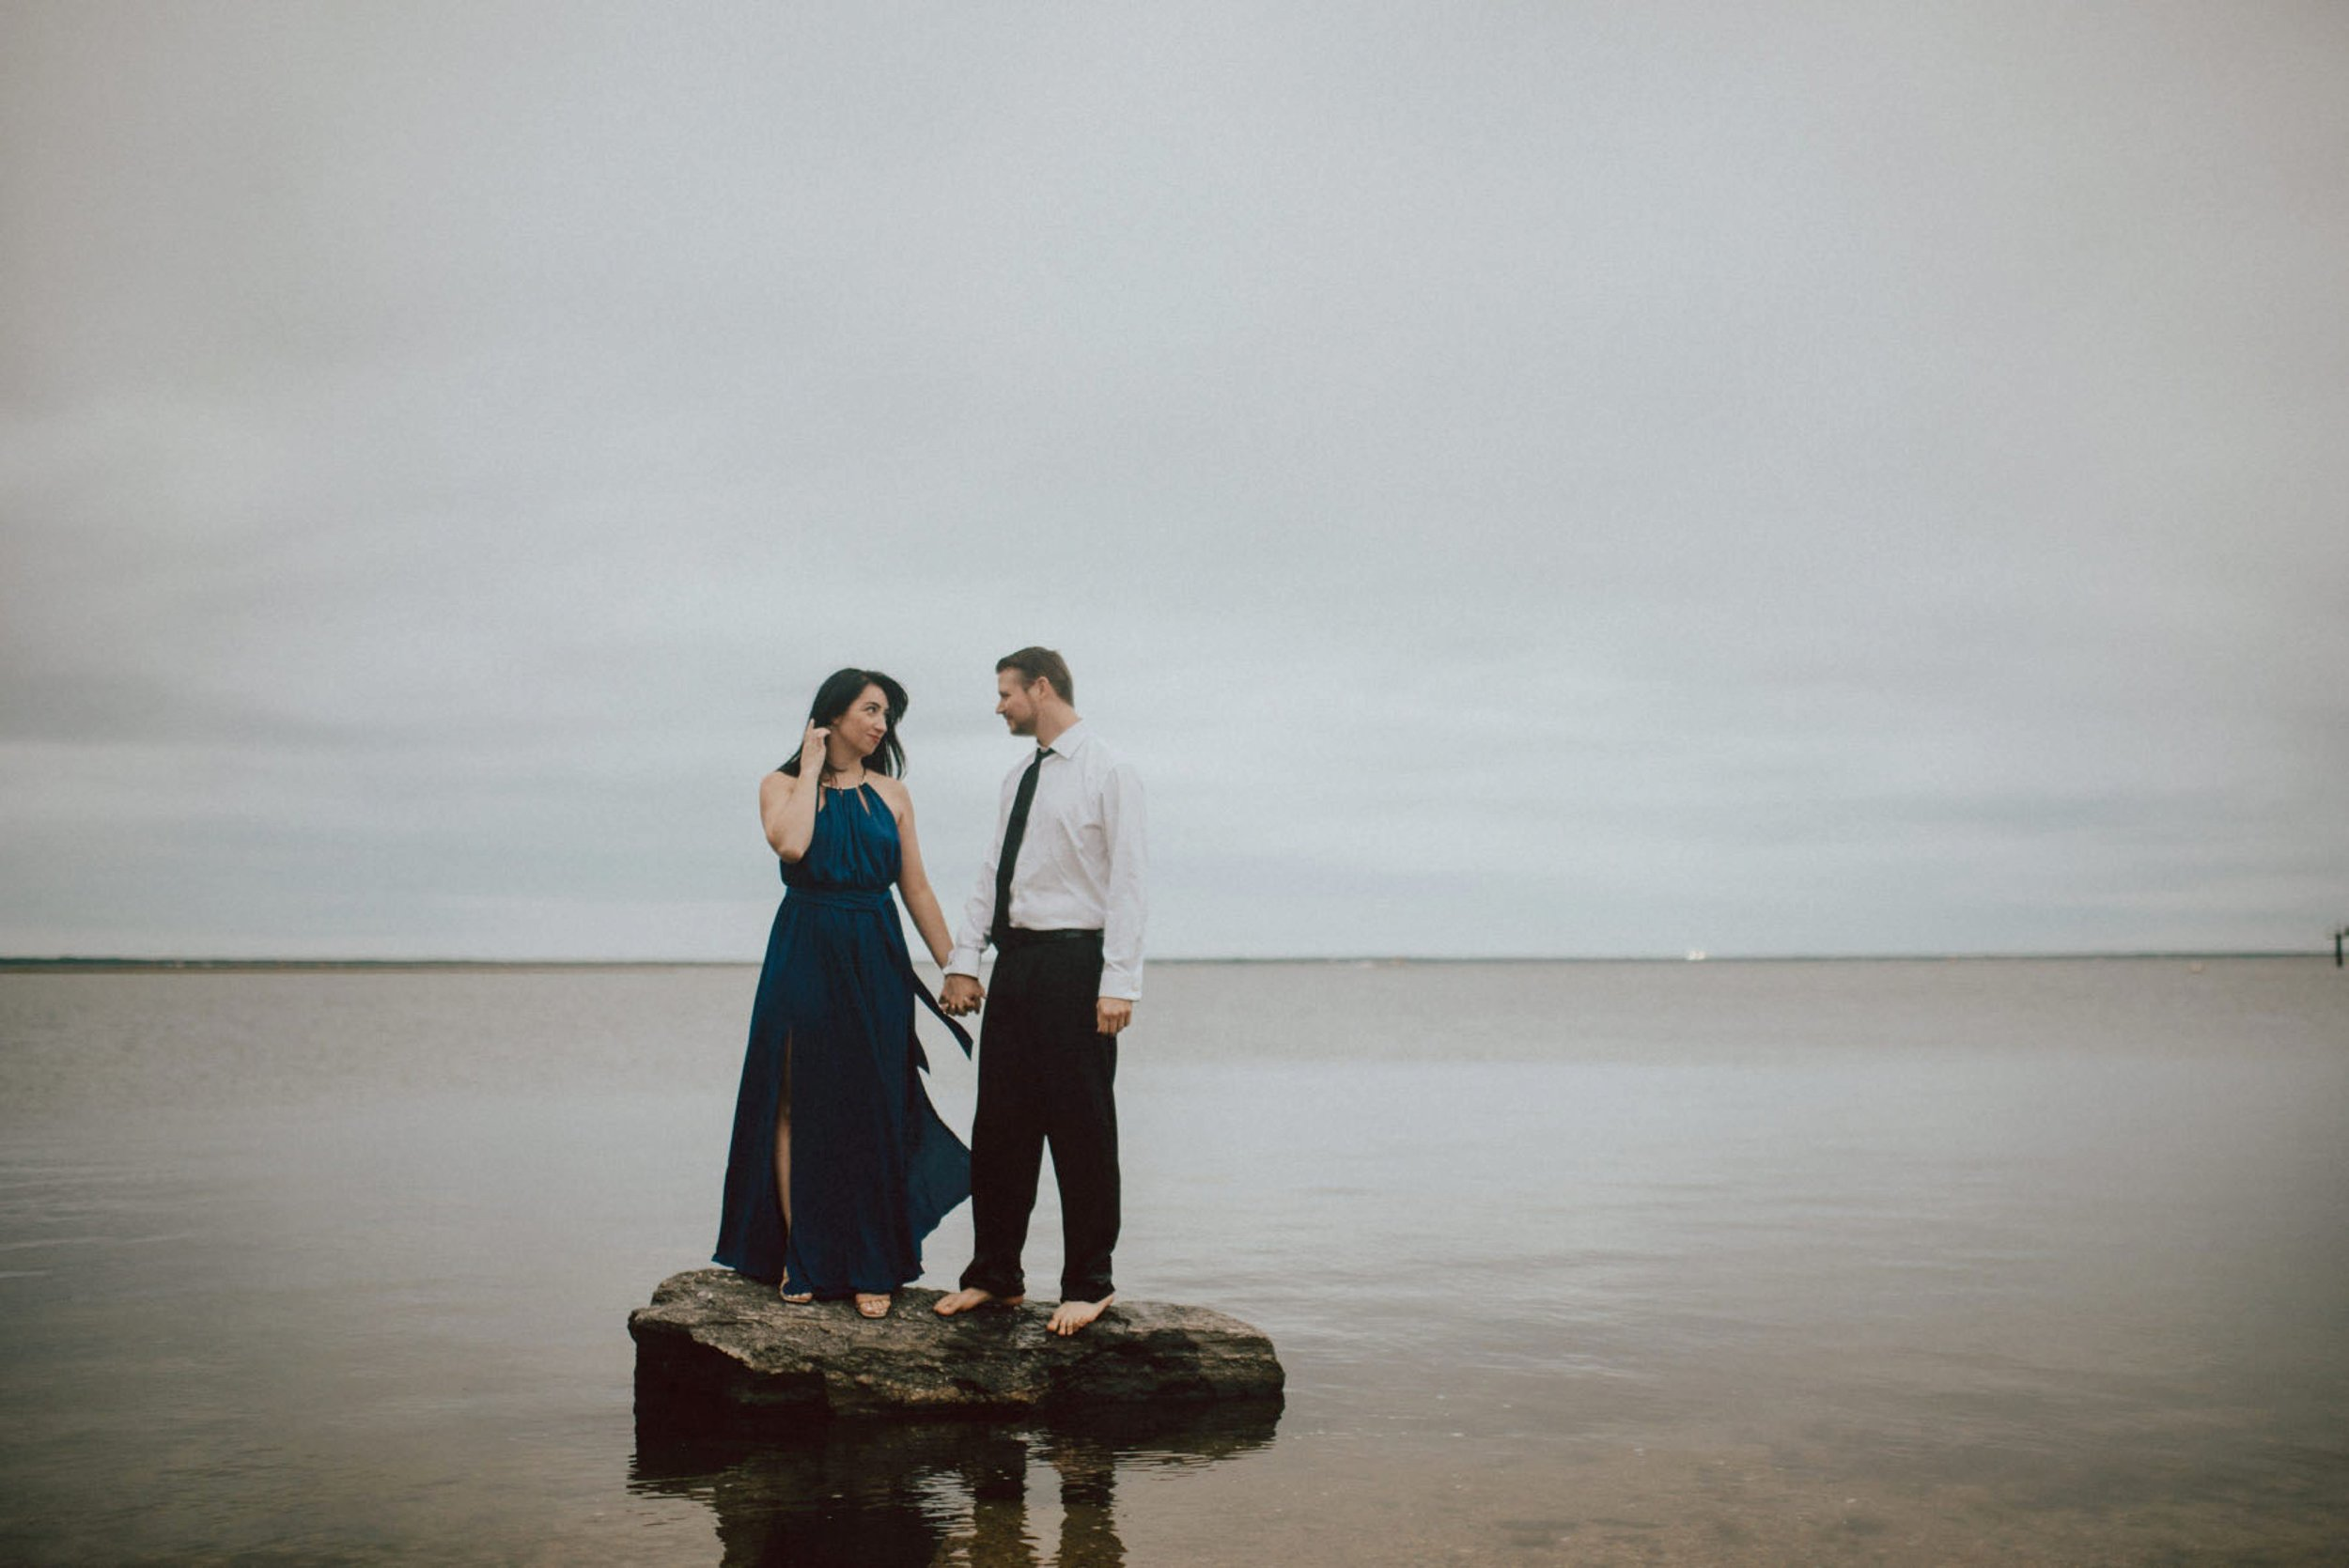 Long-beach-island-engagement-session-54.jpg